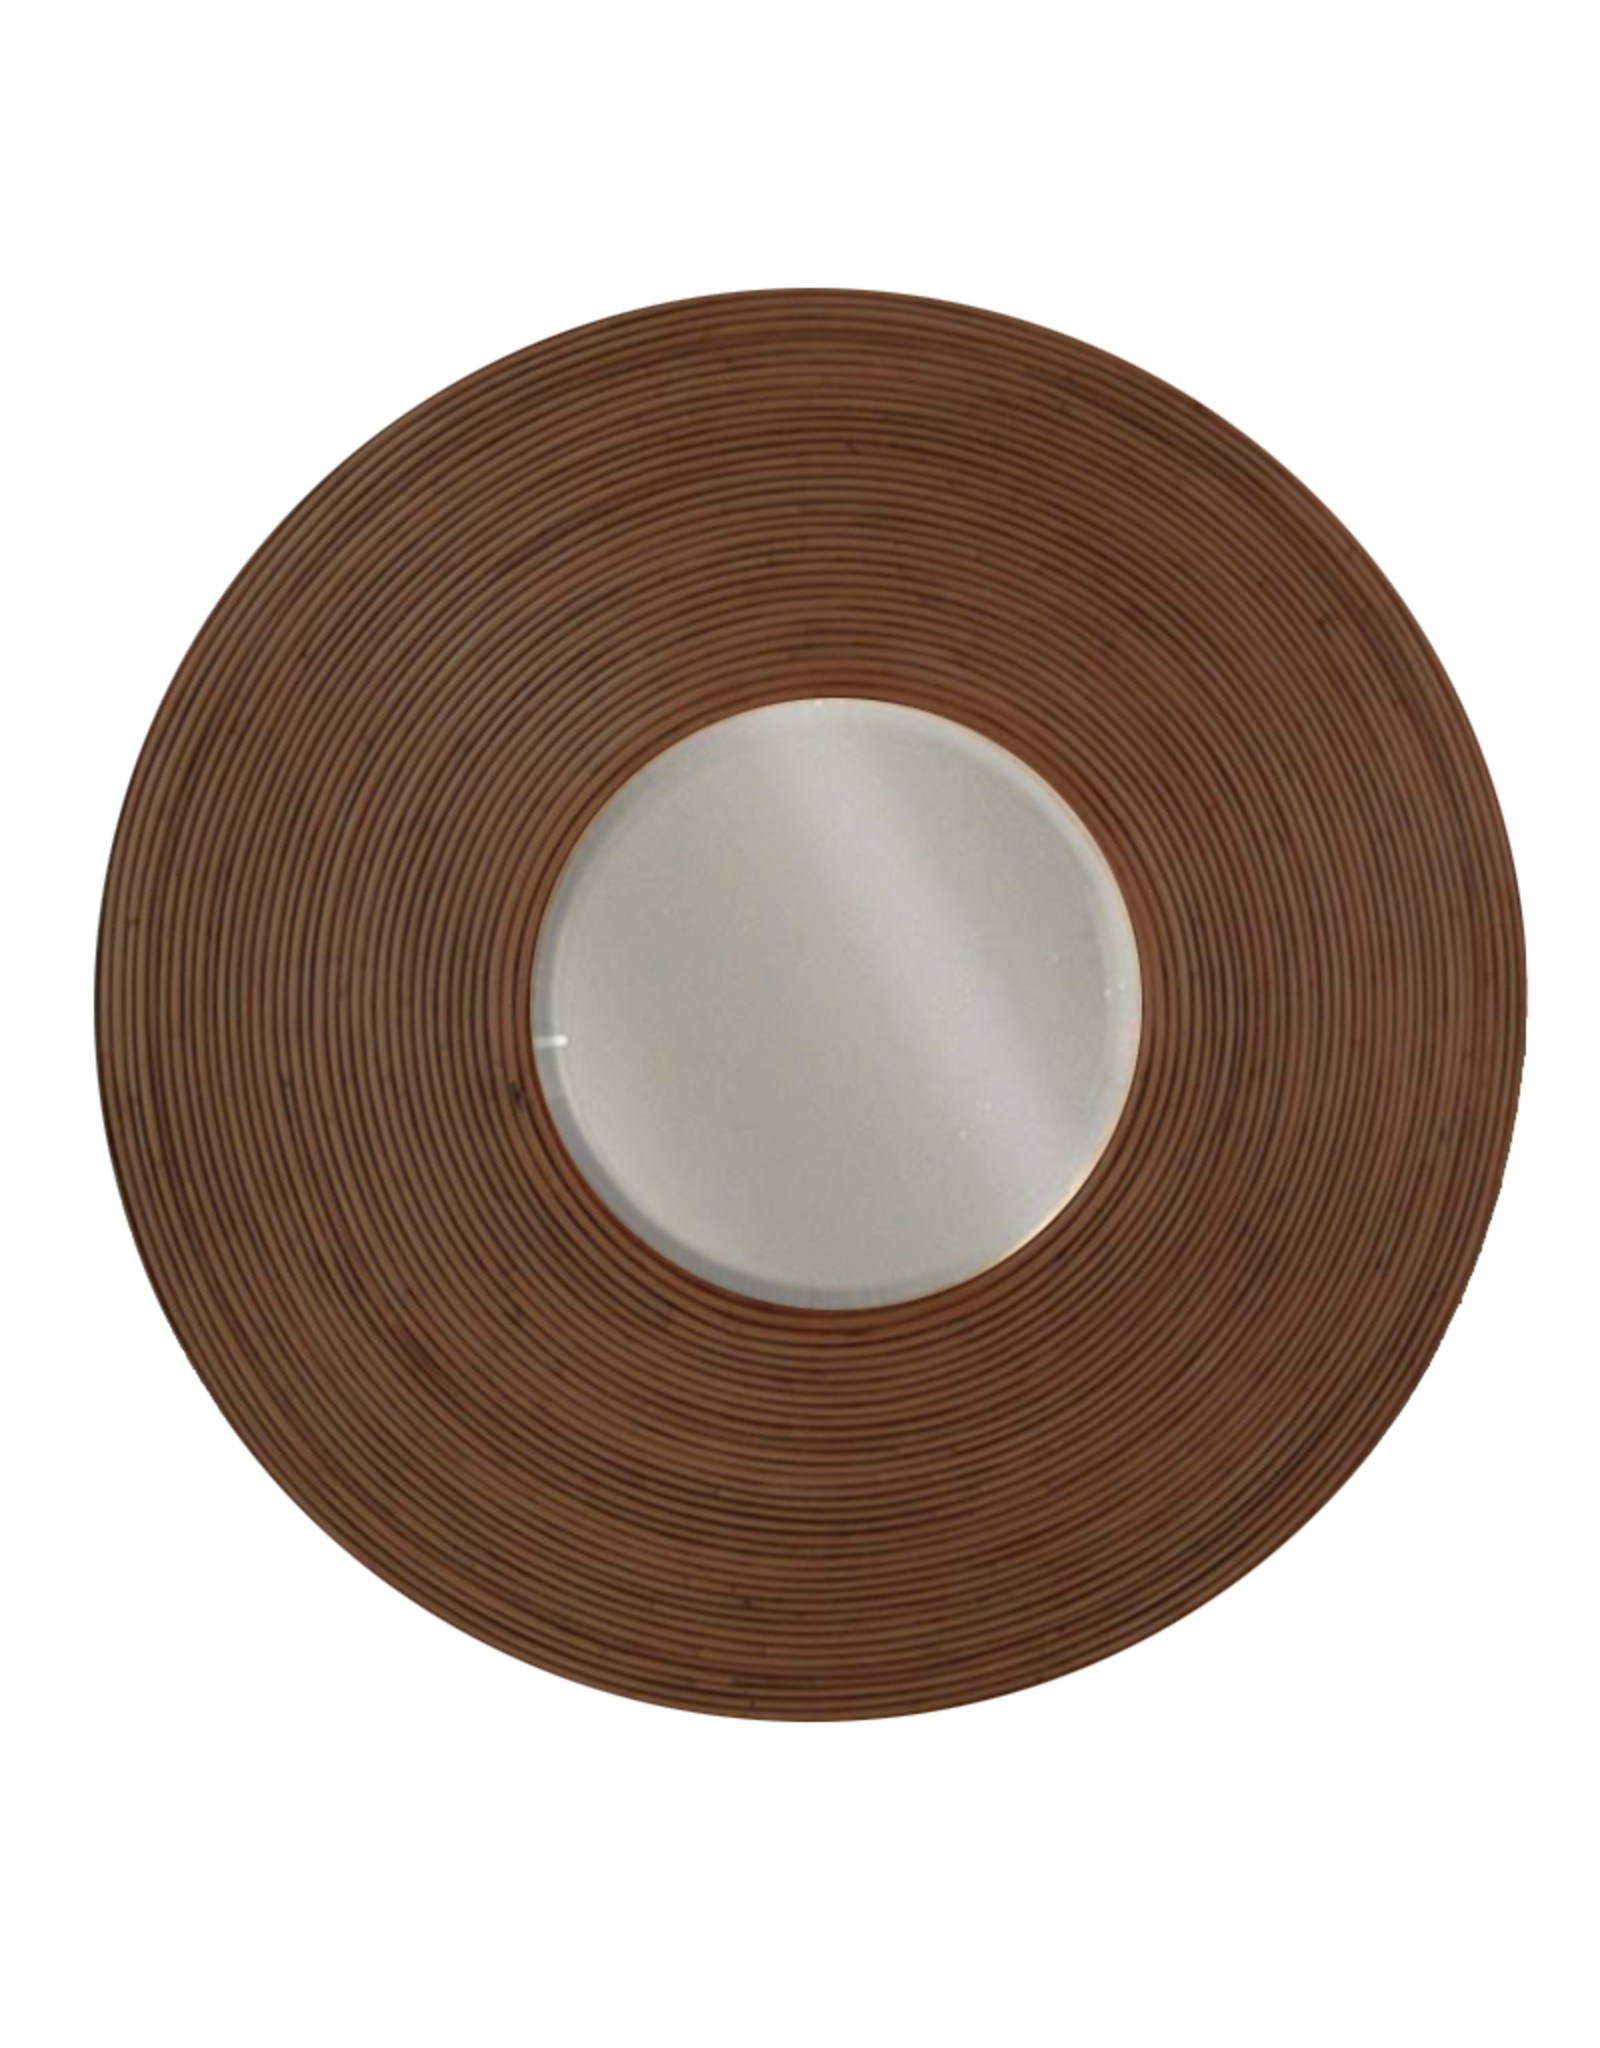 Padmas Plantation Billabong Mirror Round w Rattan Border - In Store Pick Up Only